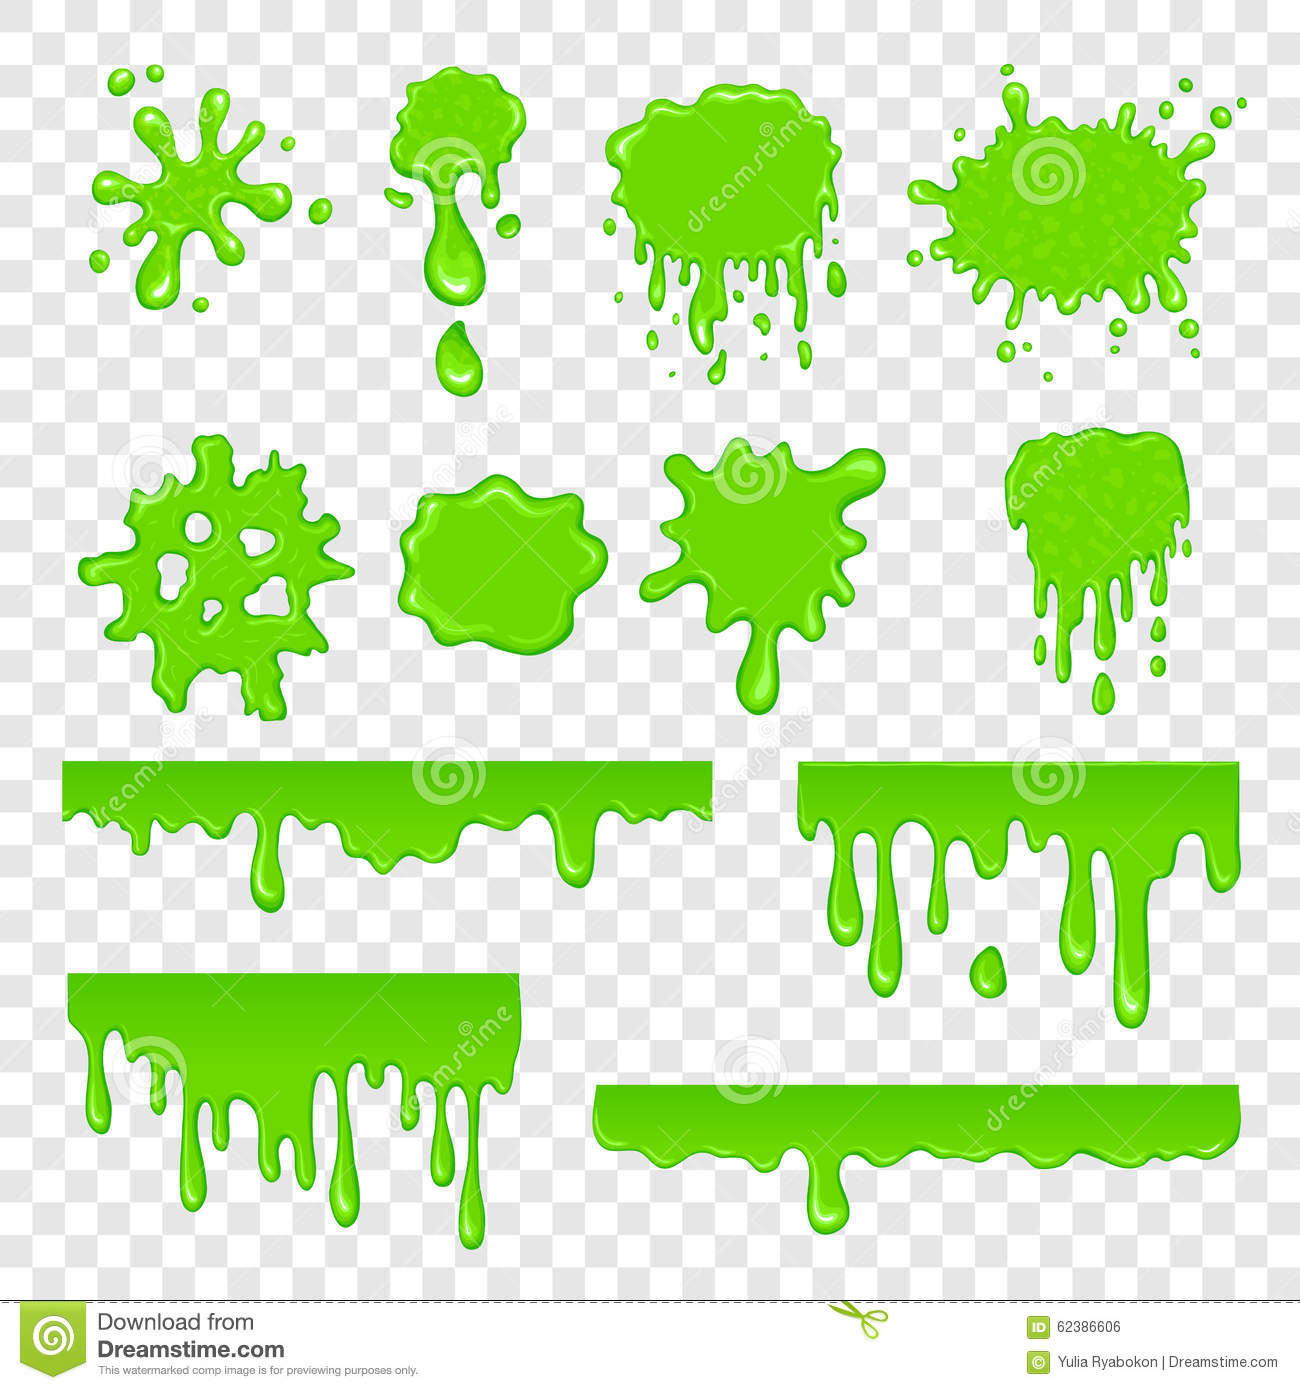 Dripping Slime Clipart - ClipartXtras